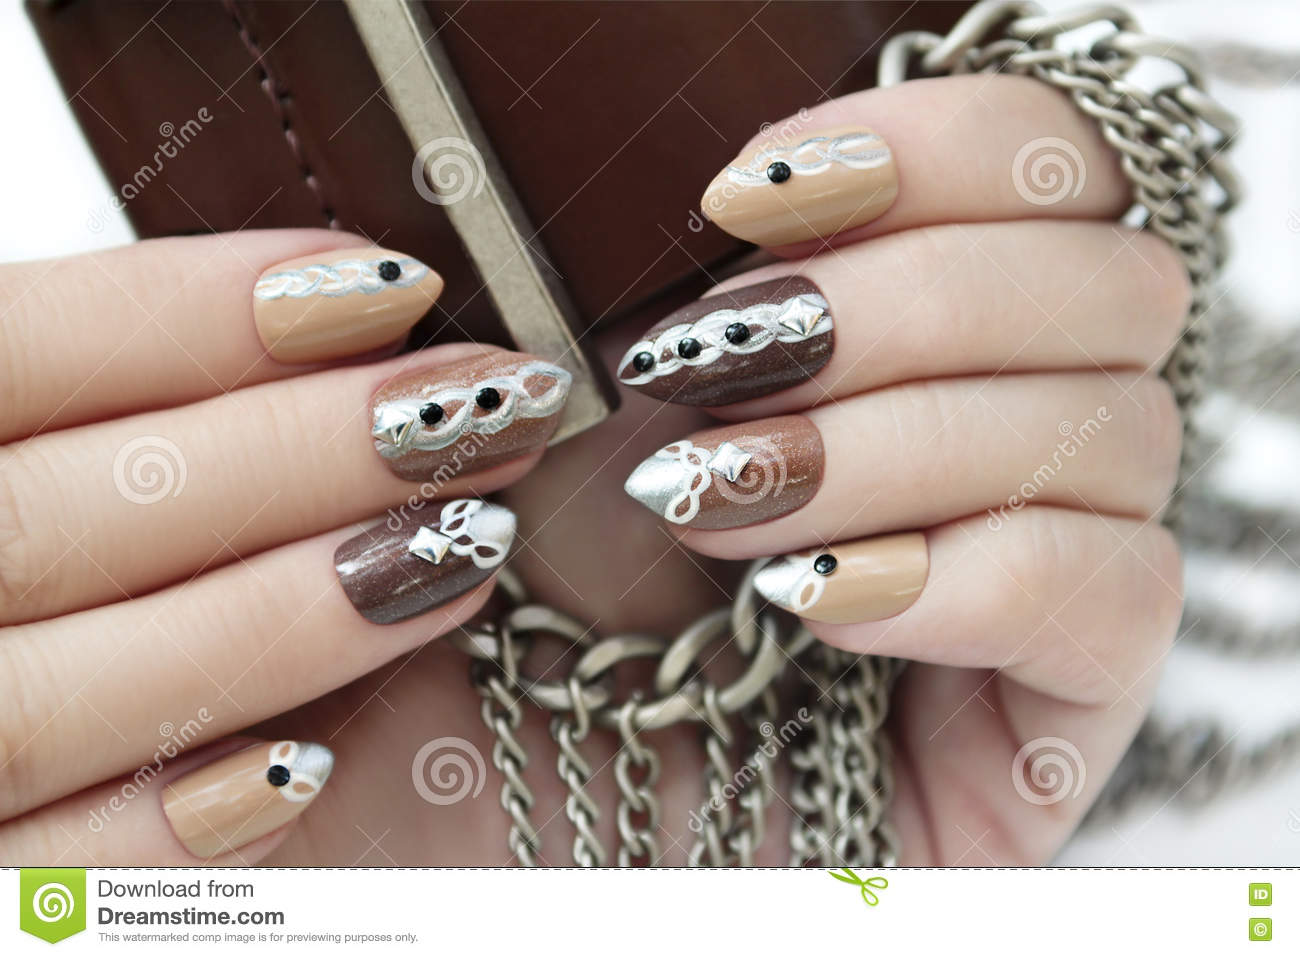 Manicure with chain. stock photo. Image of form, chains - 74698460